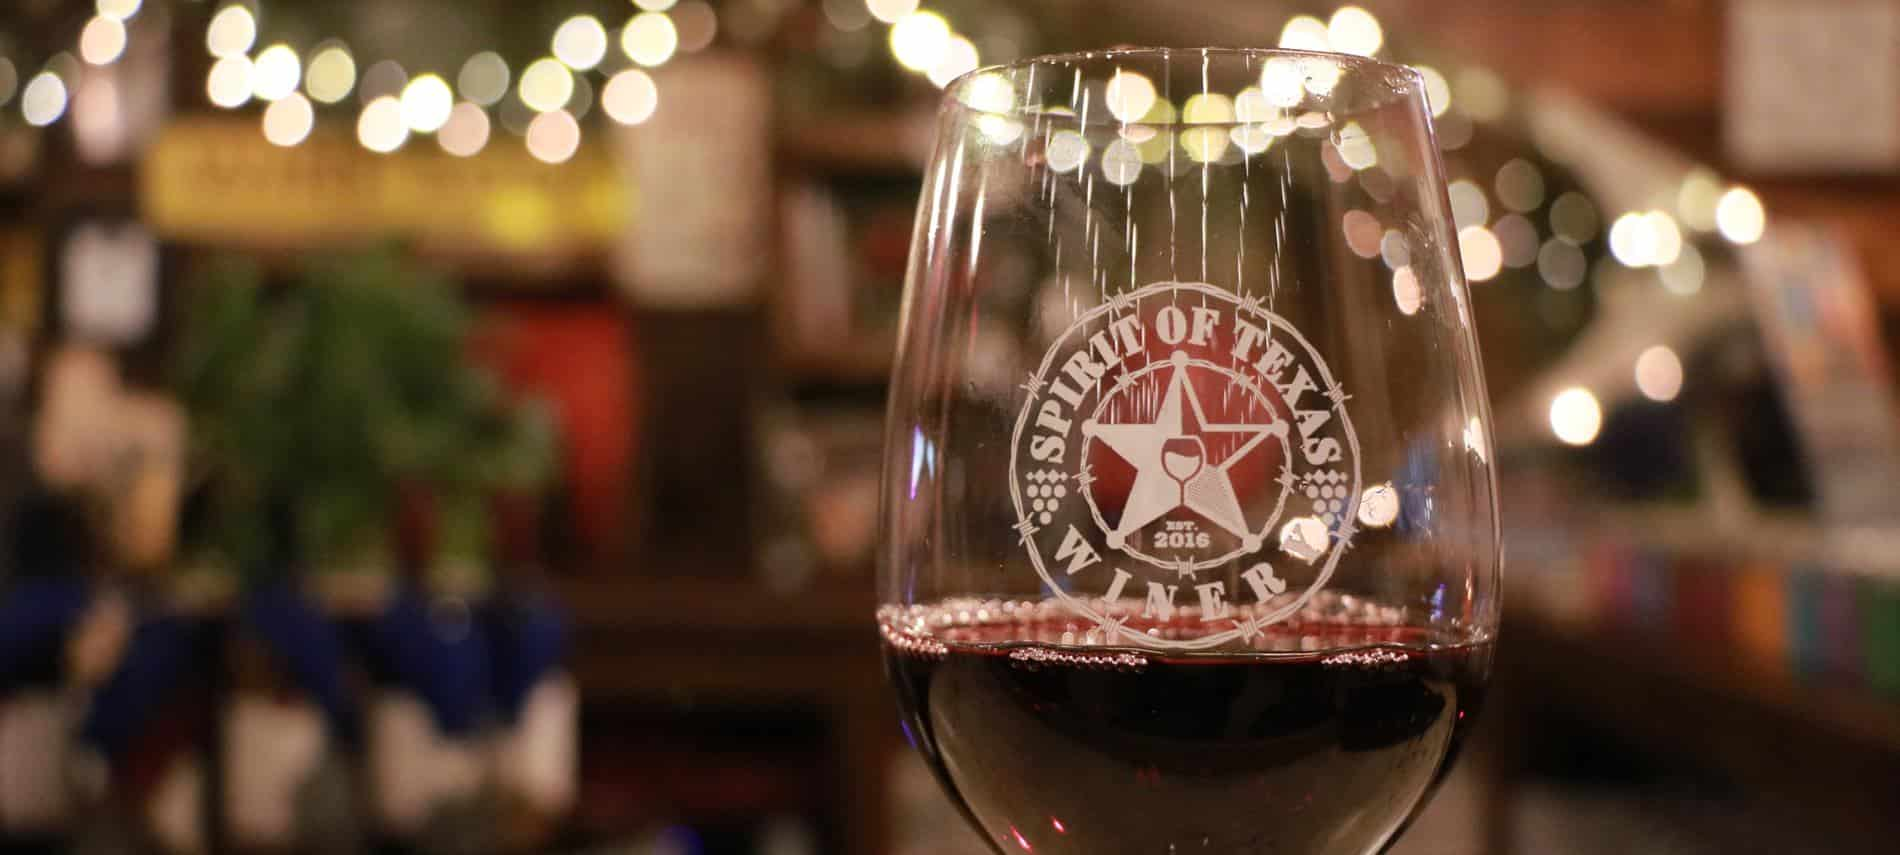 Close-up view of a Star of Texas winery glass filled with red wine and twinkle lights in the background